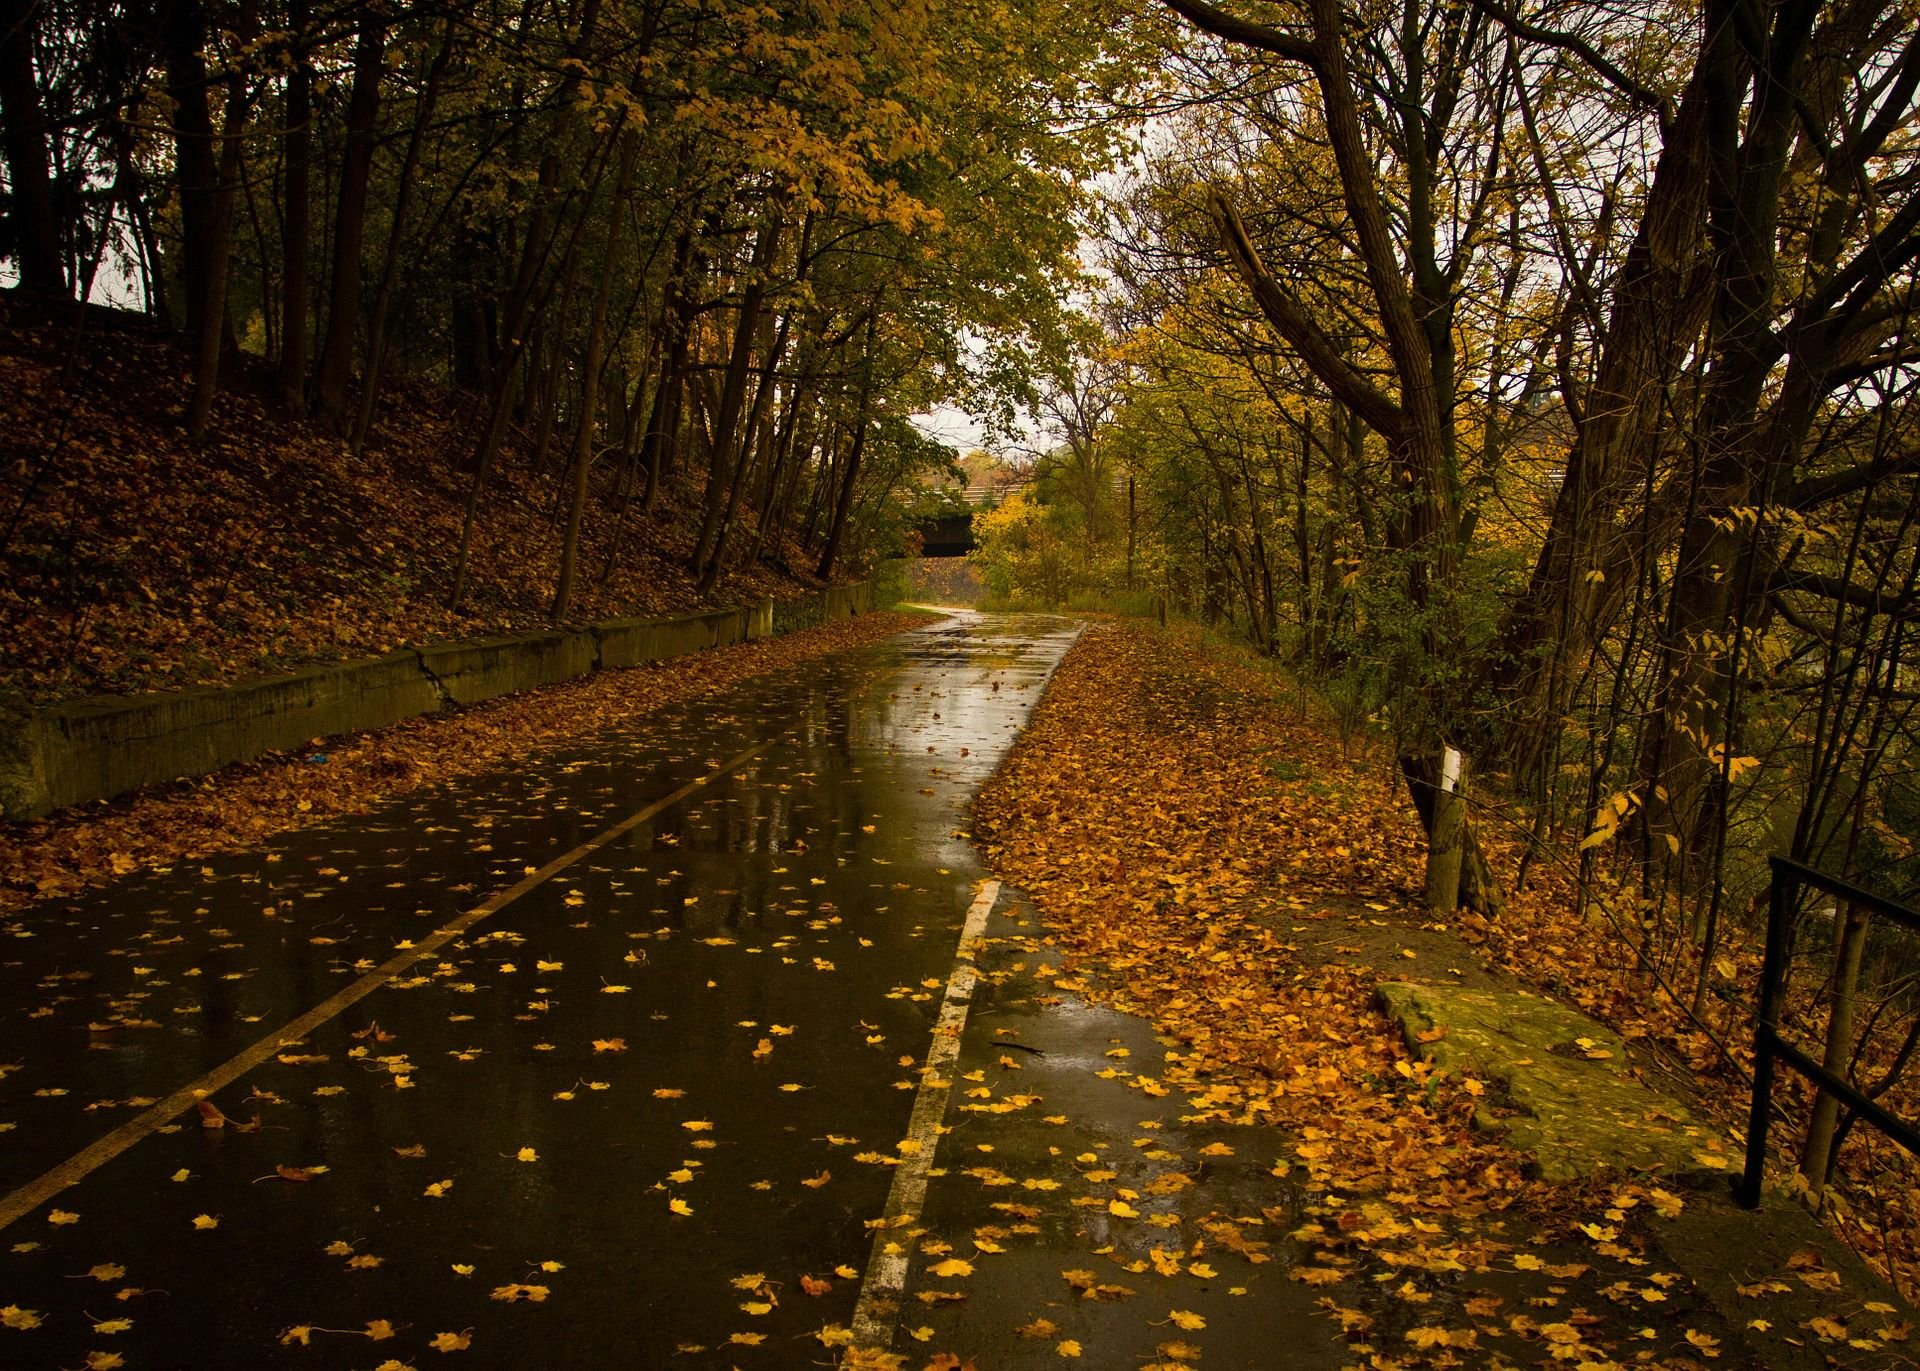 Wet road rainy day leaves fall autumn hd wallpaper - Rainy hd wallpaper for pc ...